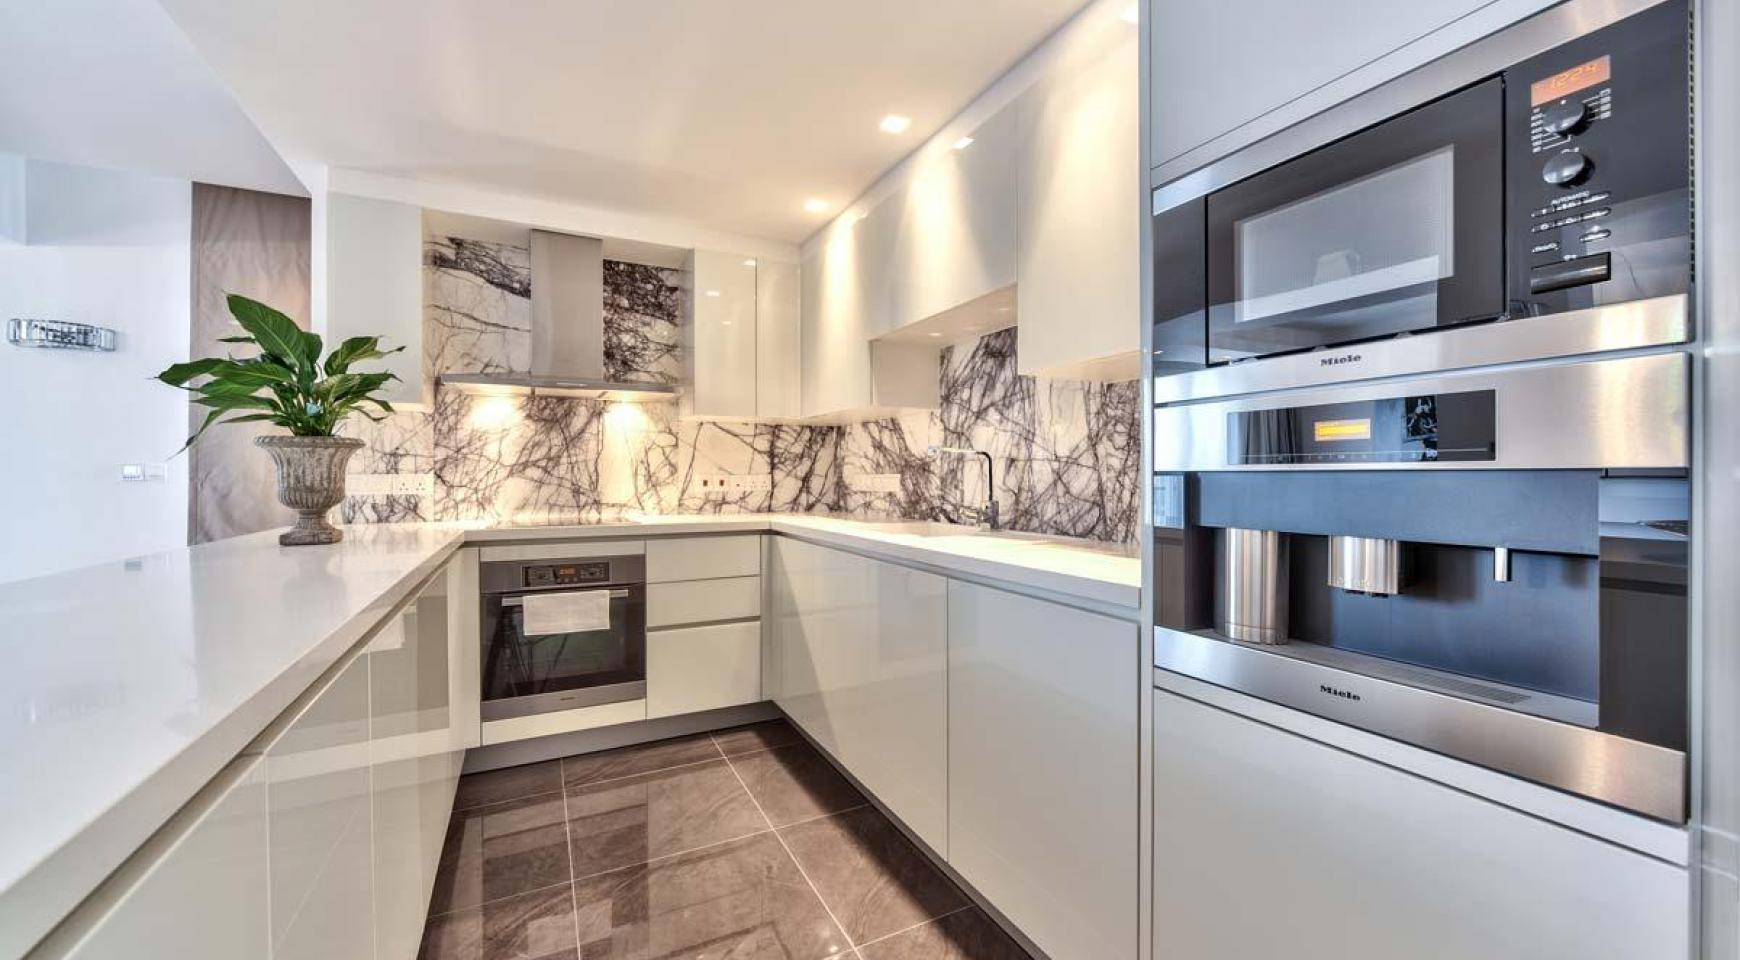 Malibu Residence. New Modern 3 Bedroom Apartment 202 in a Luxury Complex - 12